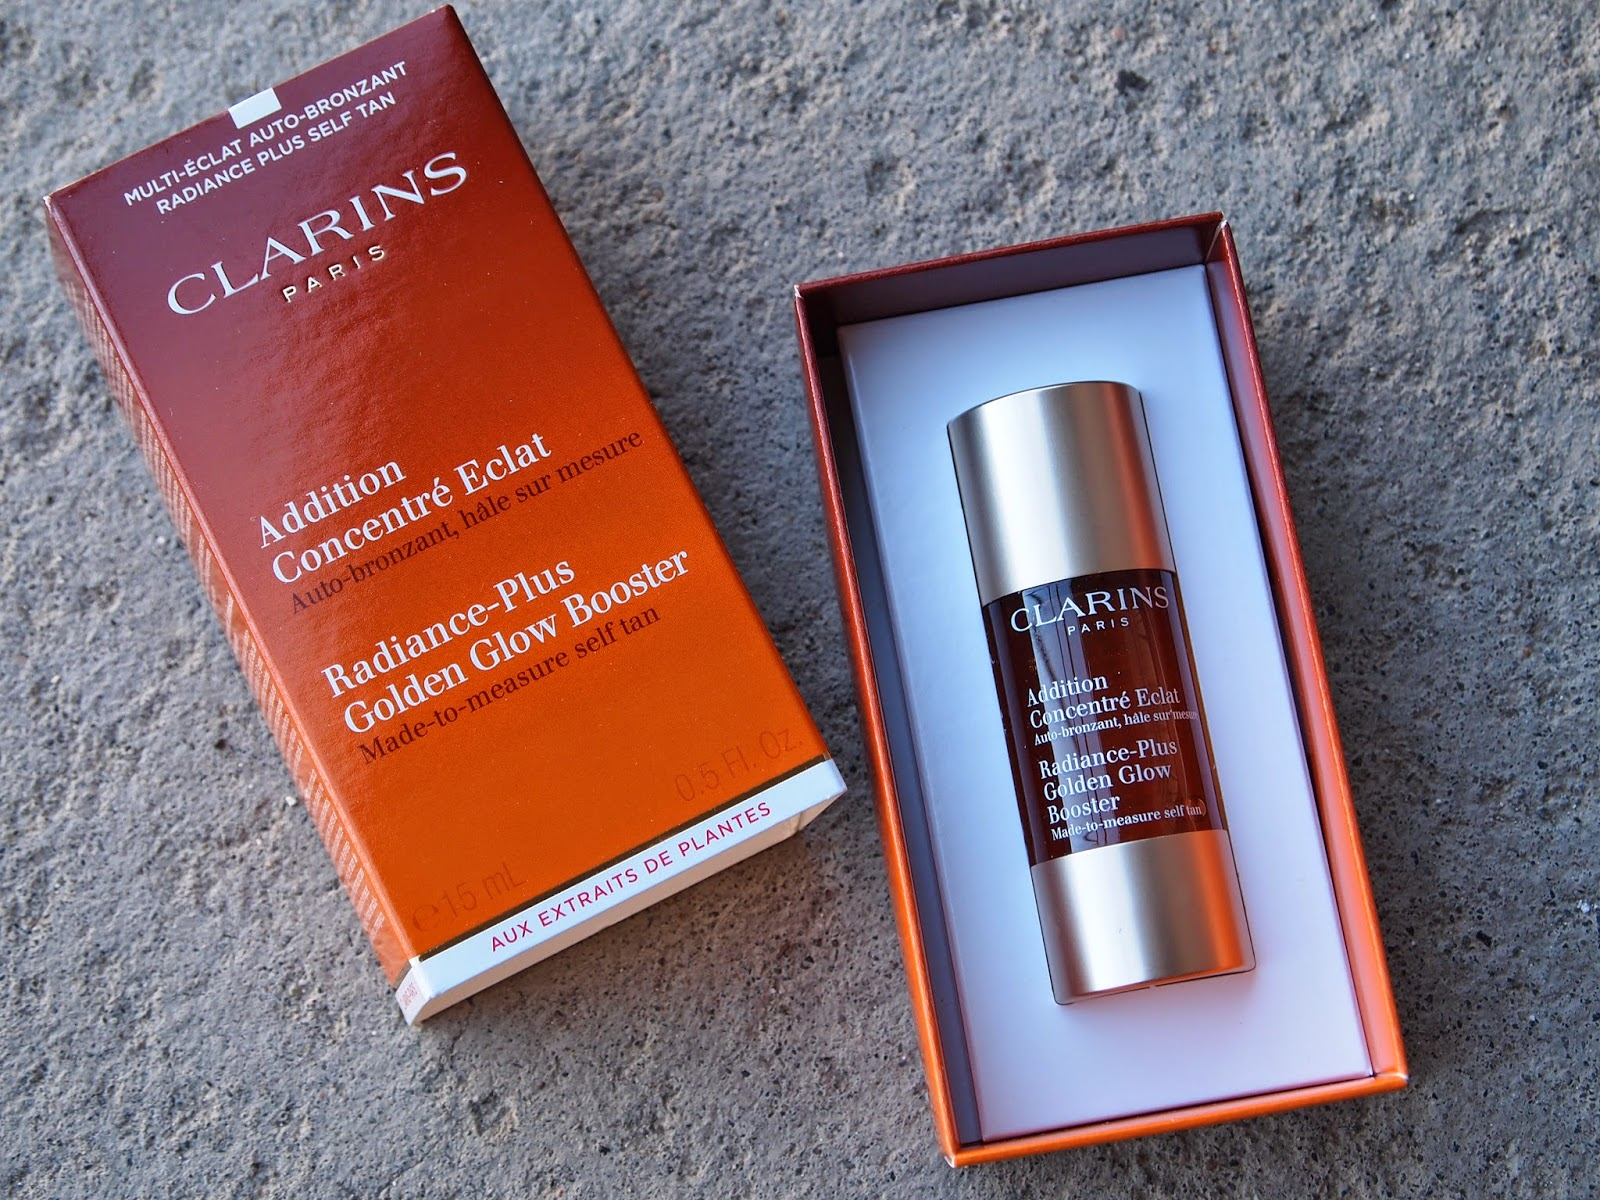 Test: Radiance-Plus Golden Glow Booster fra Clarins